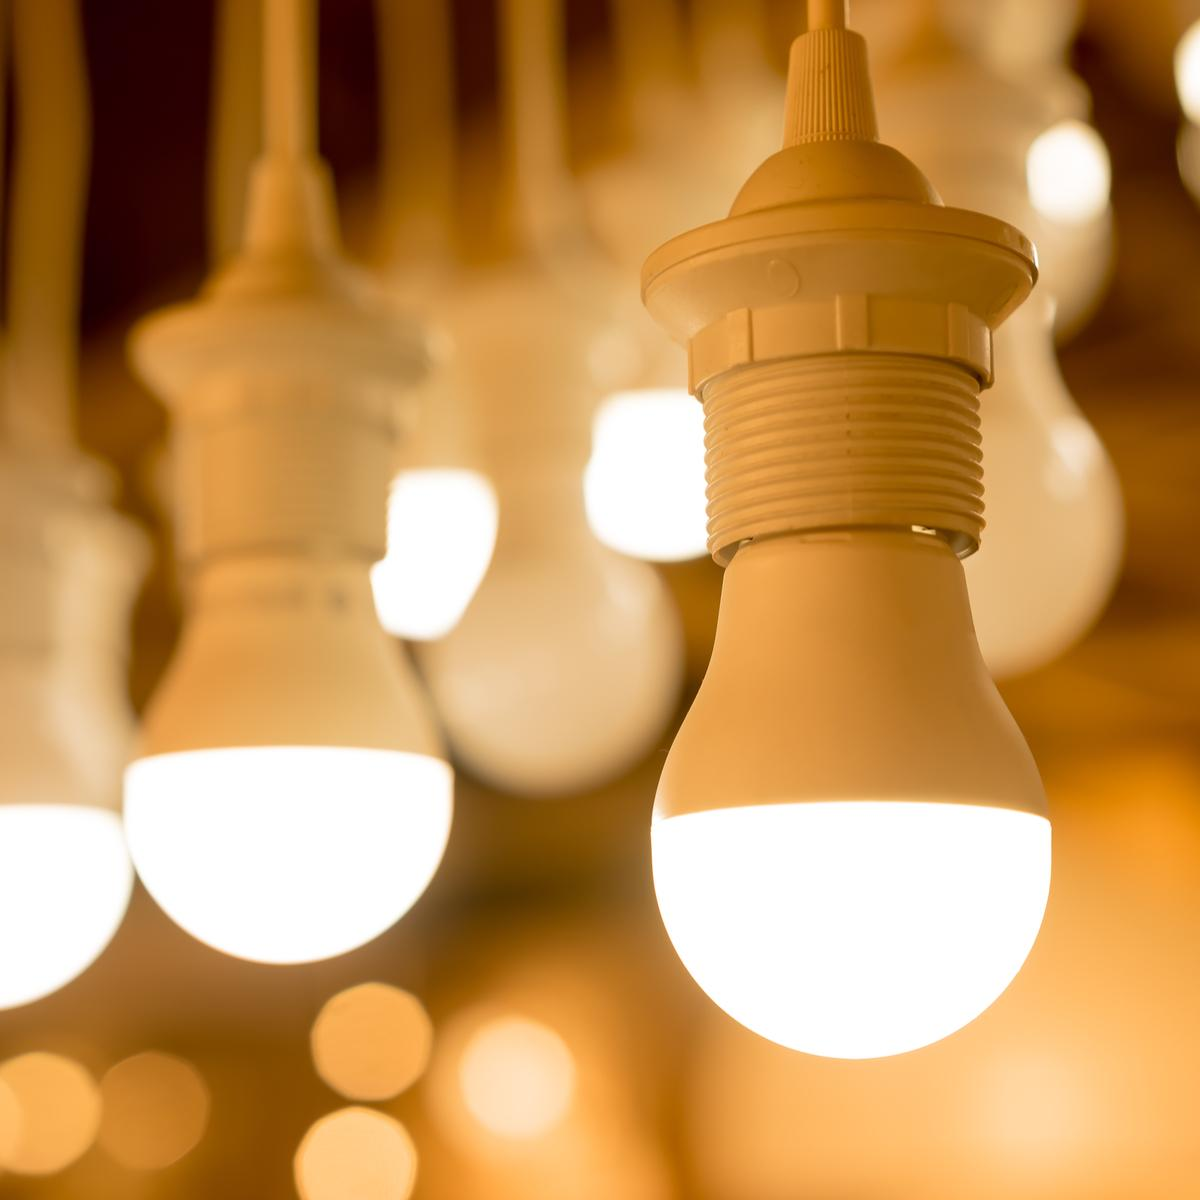 Free LED installation through a partnership of Ameren Illinois and Assured Insulation Solutions in Frankfort, Illinois.